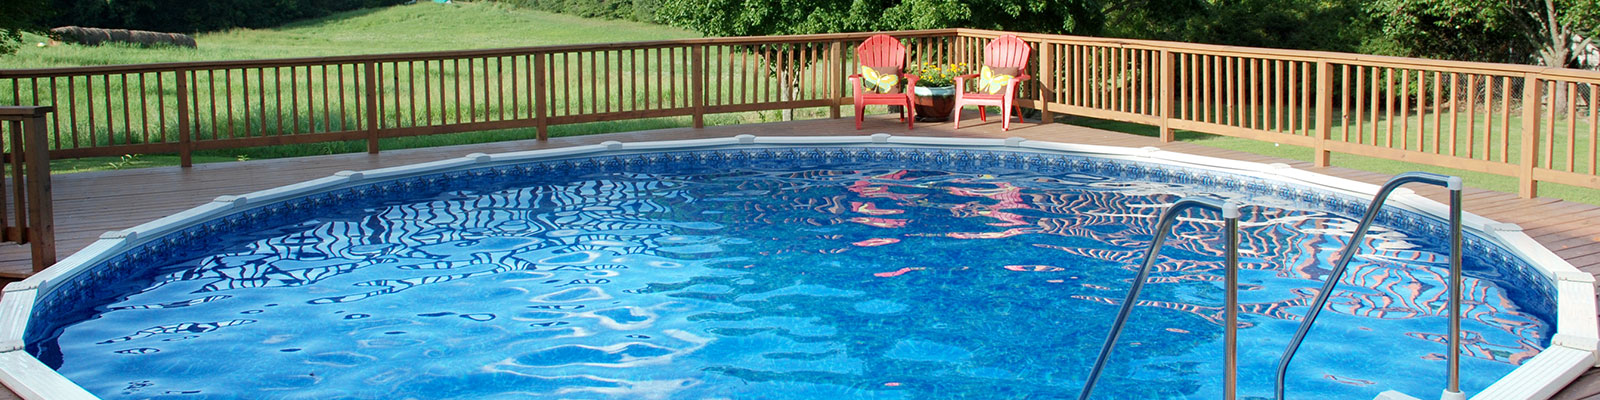 Above Ground Pools in Grand Rapids and Holland at Zagers Pool and Spa